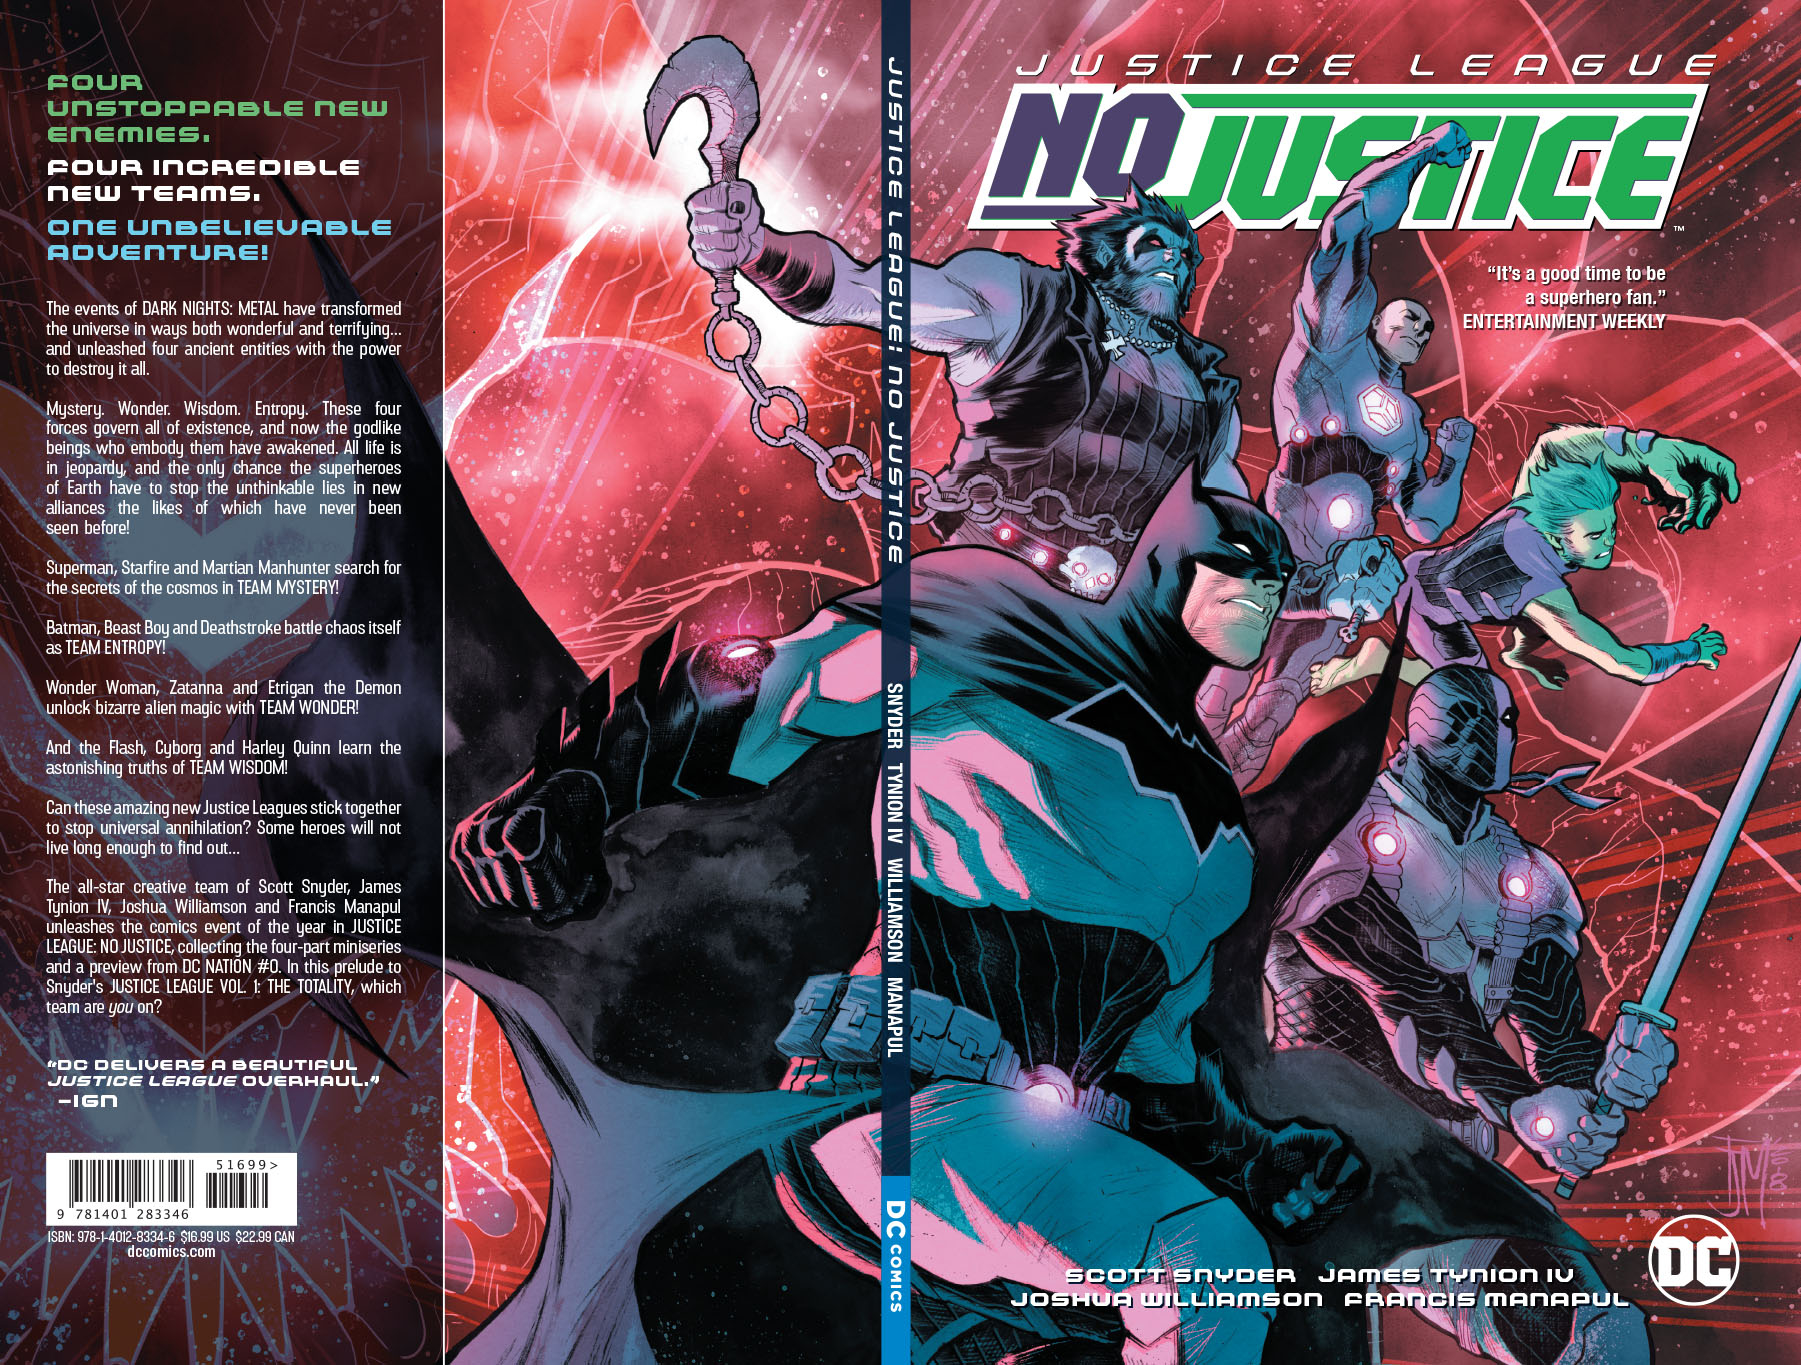 JUSTICE LEAGUE NO JUSTICE TP (JUN180583)